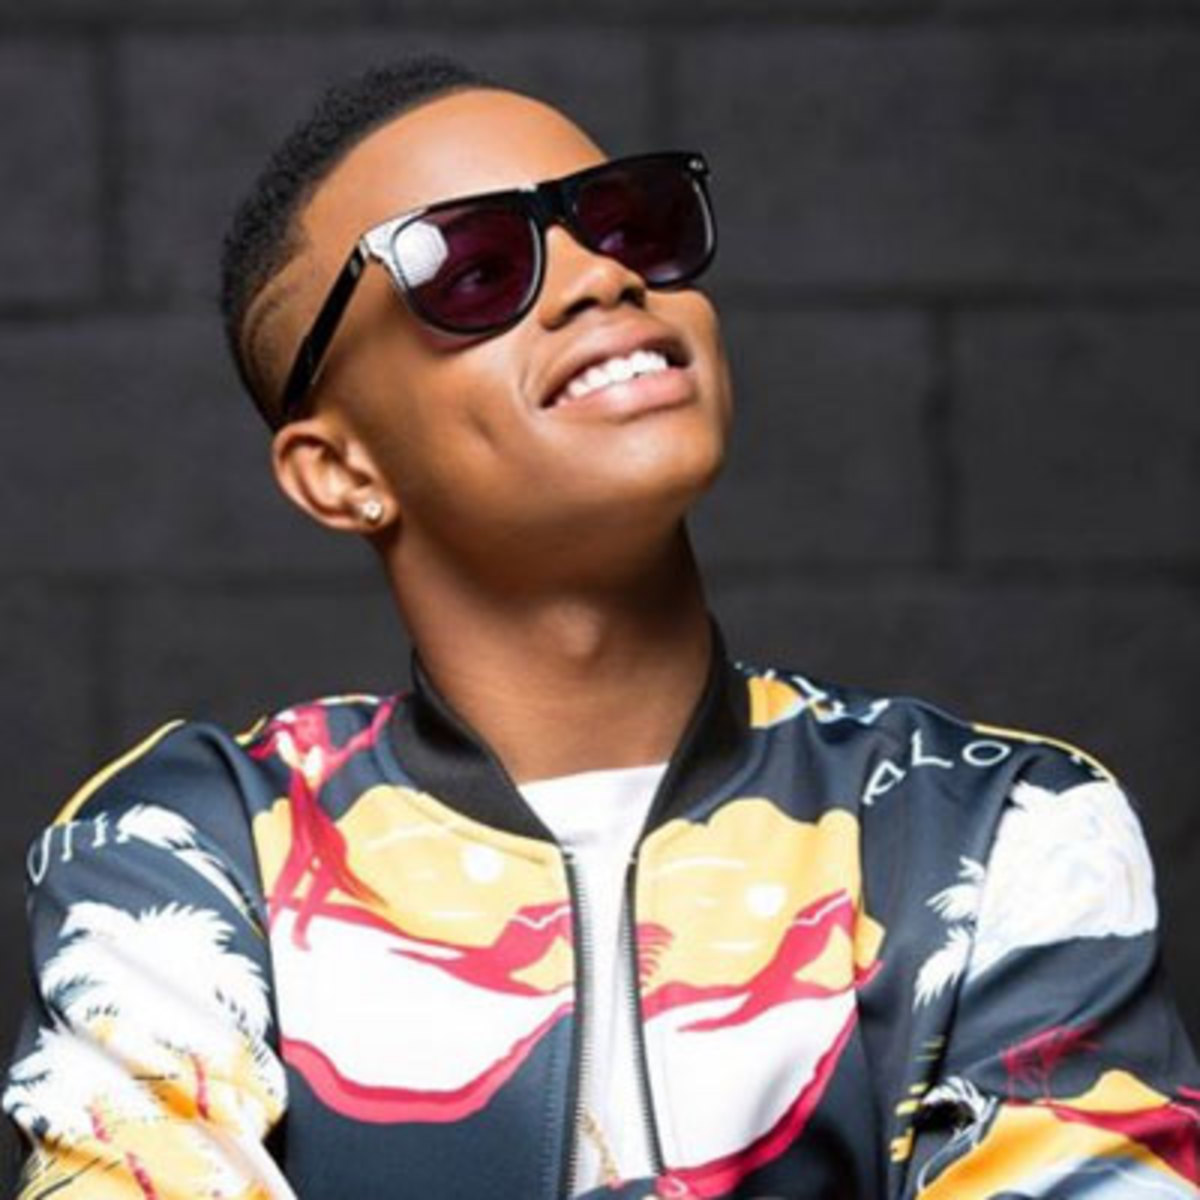 The 22-year old son of father (?) and mother(?) Silentó in 2020 photo. Silentó earned a million dollar salary - leaving the net worth at 0.3 million in 2020